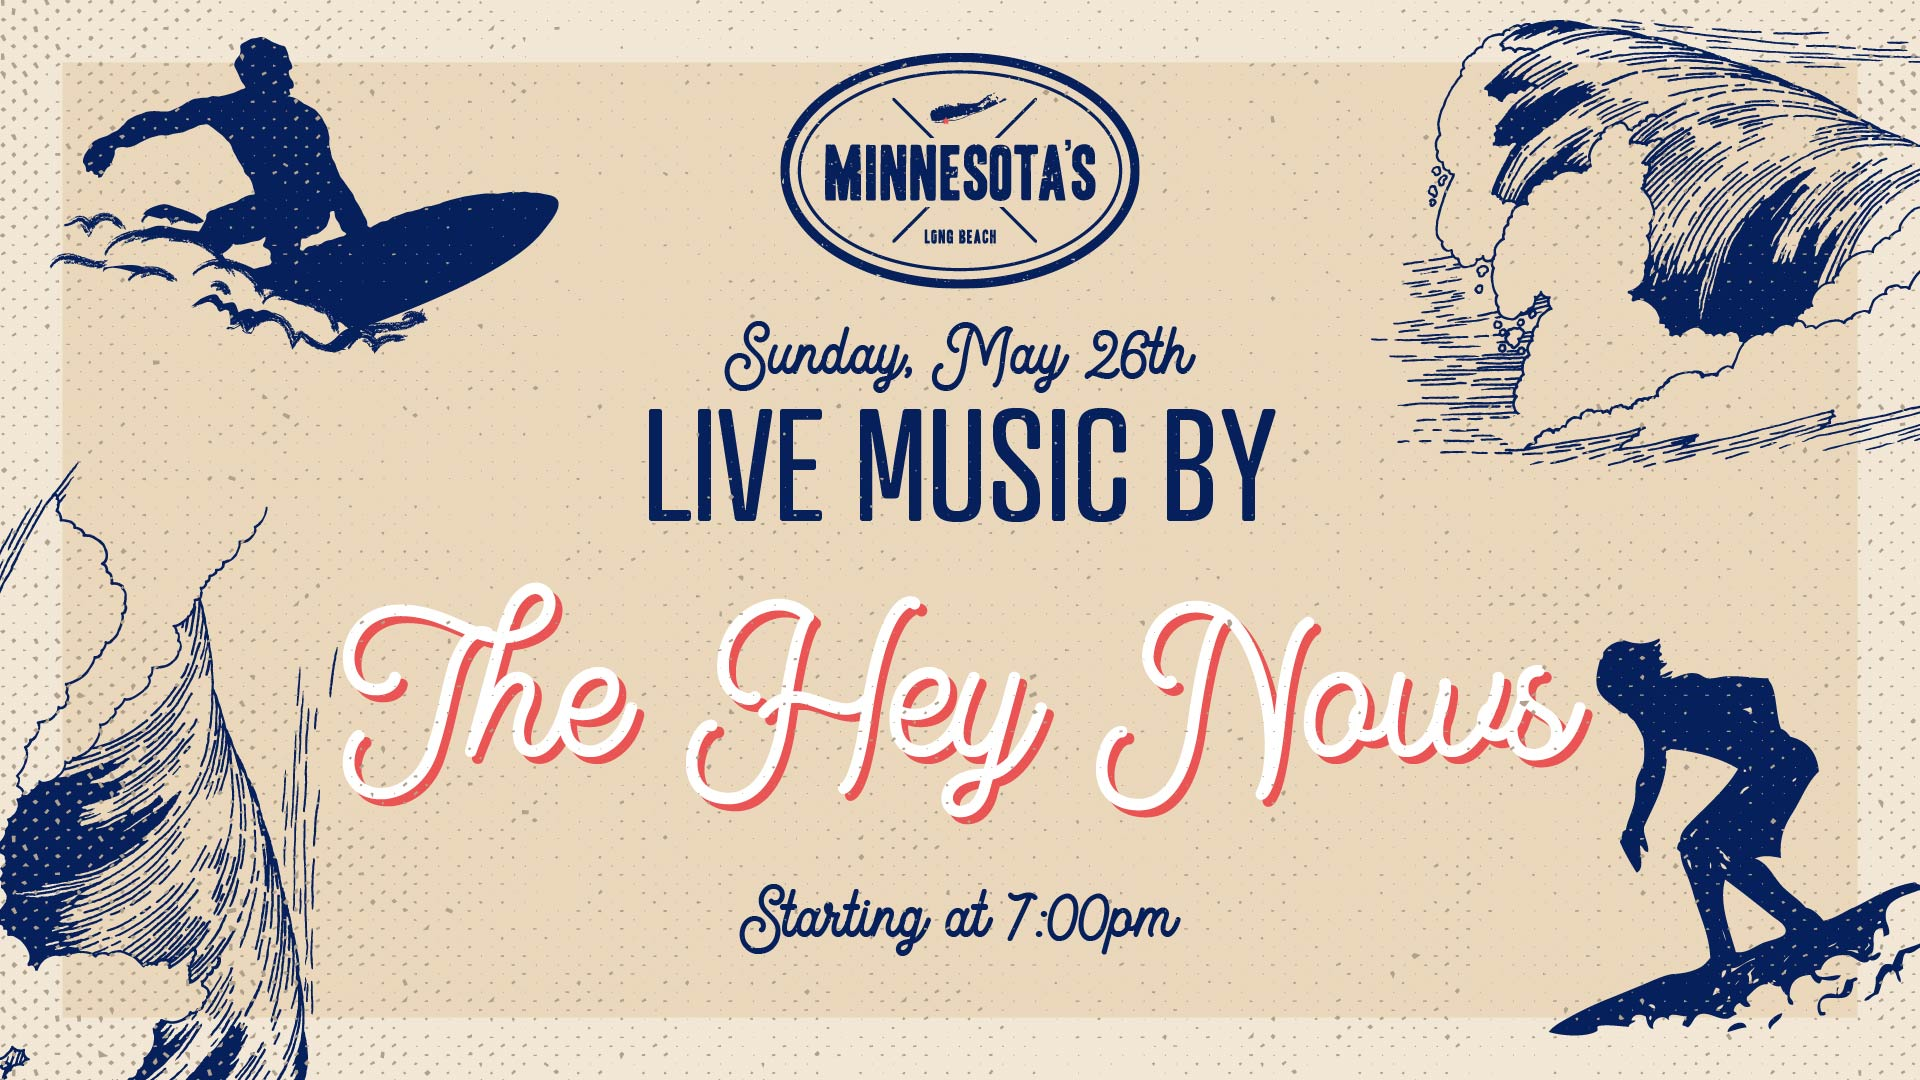 flyer for the hey nows performing live at minnesotas on may 26th at 7pm